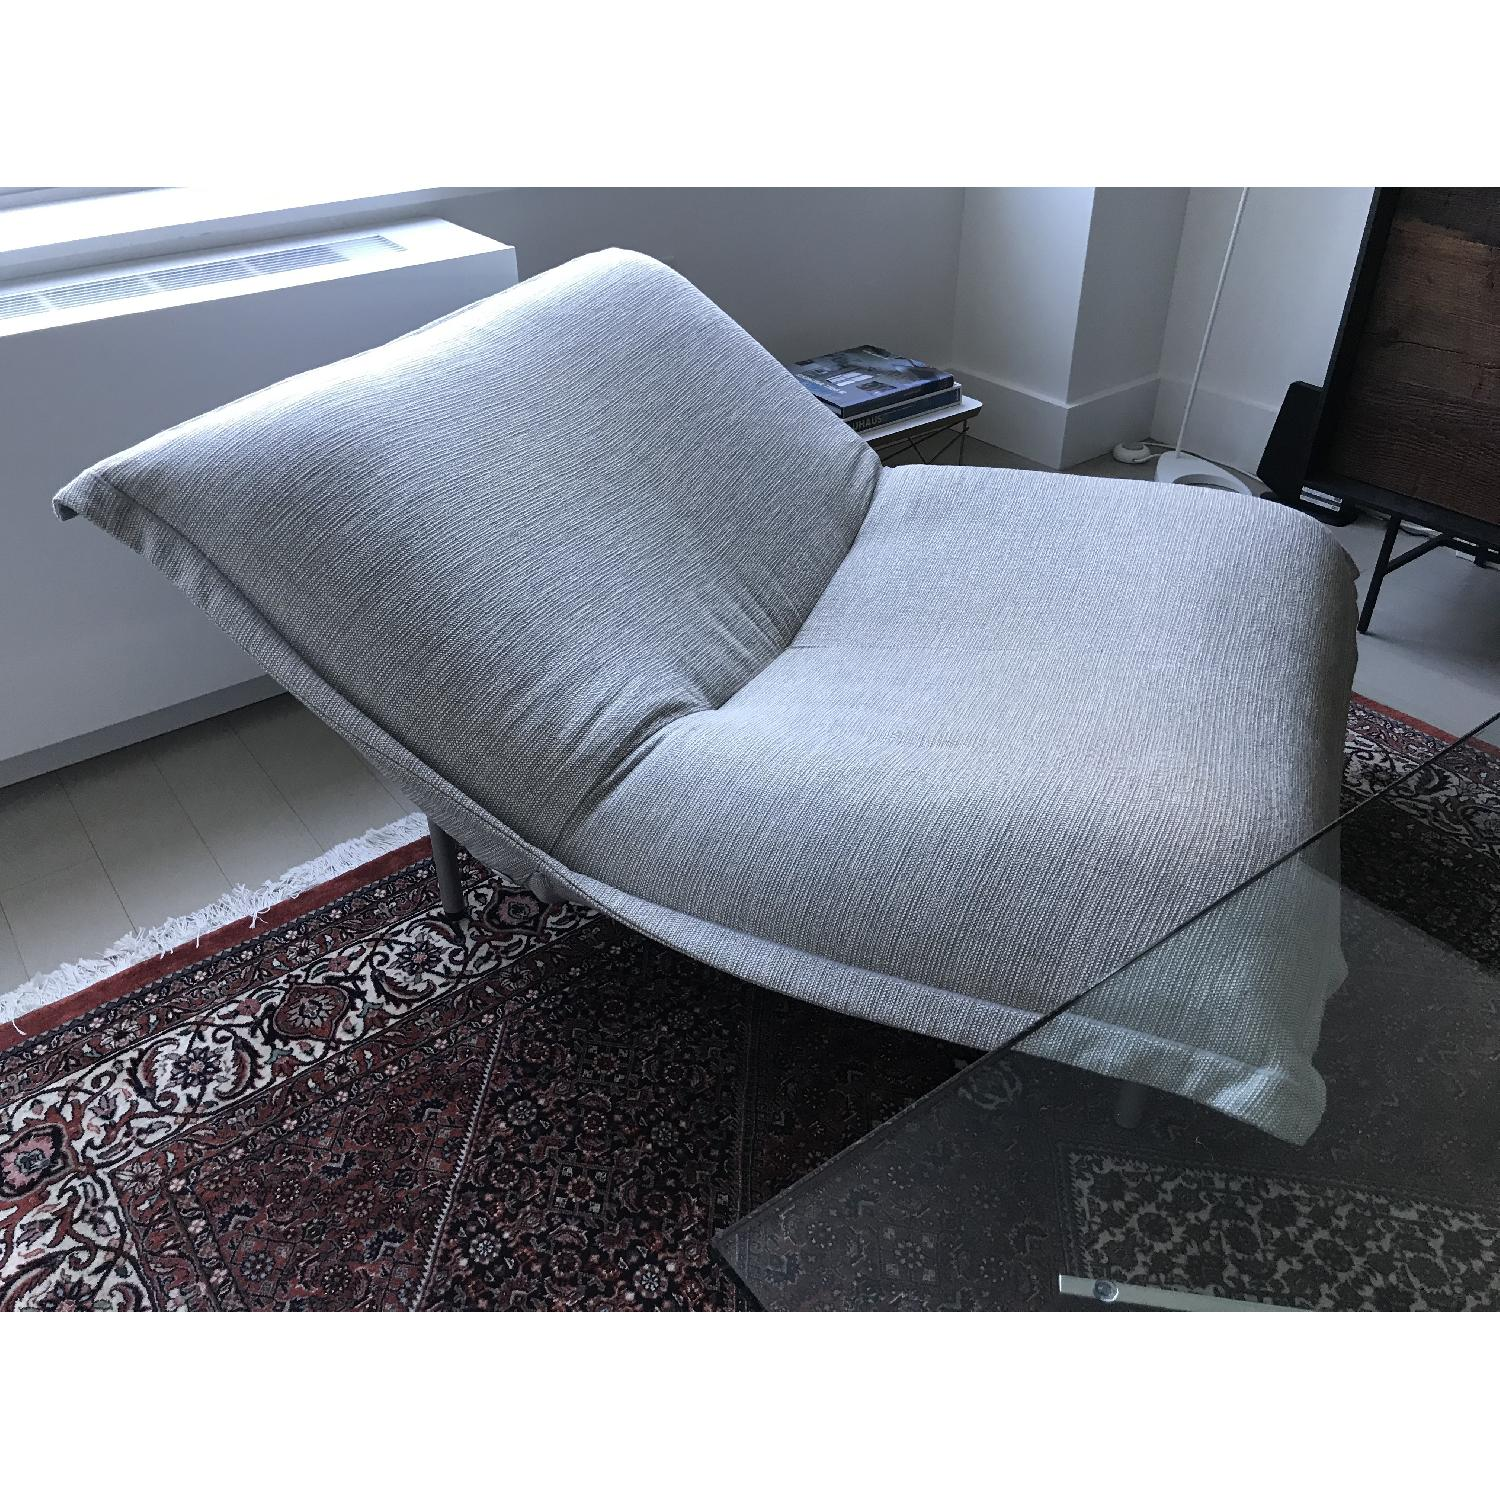 Ligne Roset Fabric Chair w/ Removable Cover - image-3